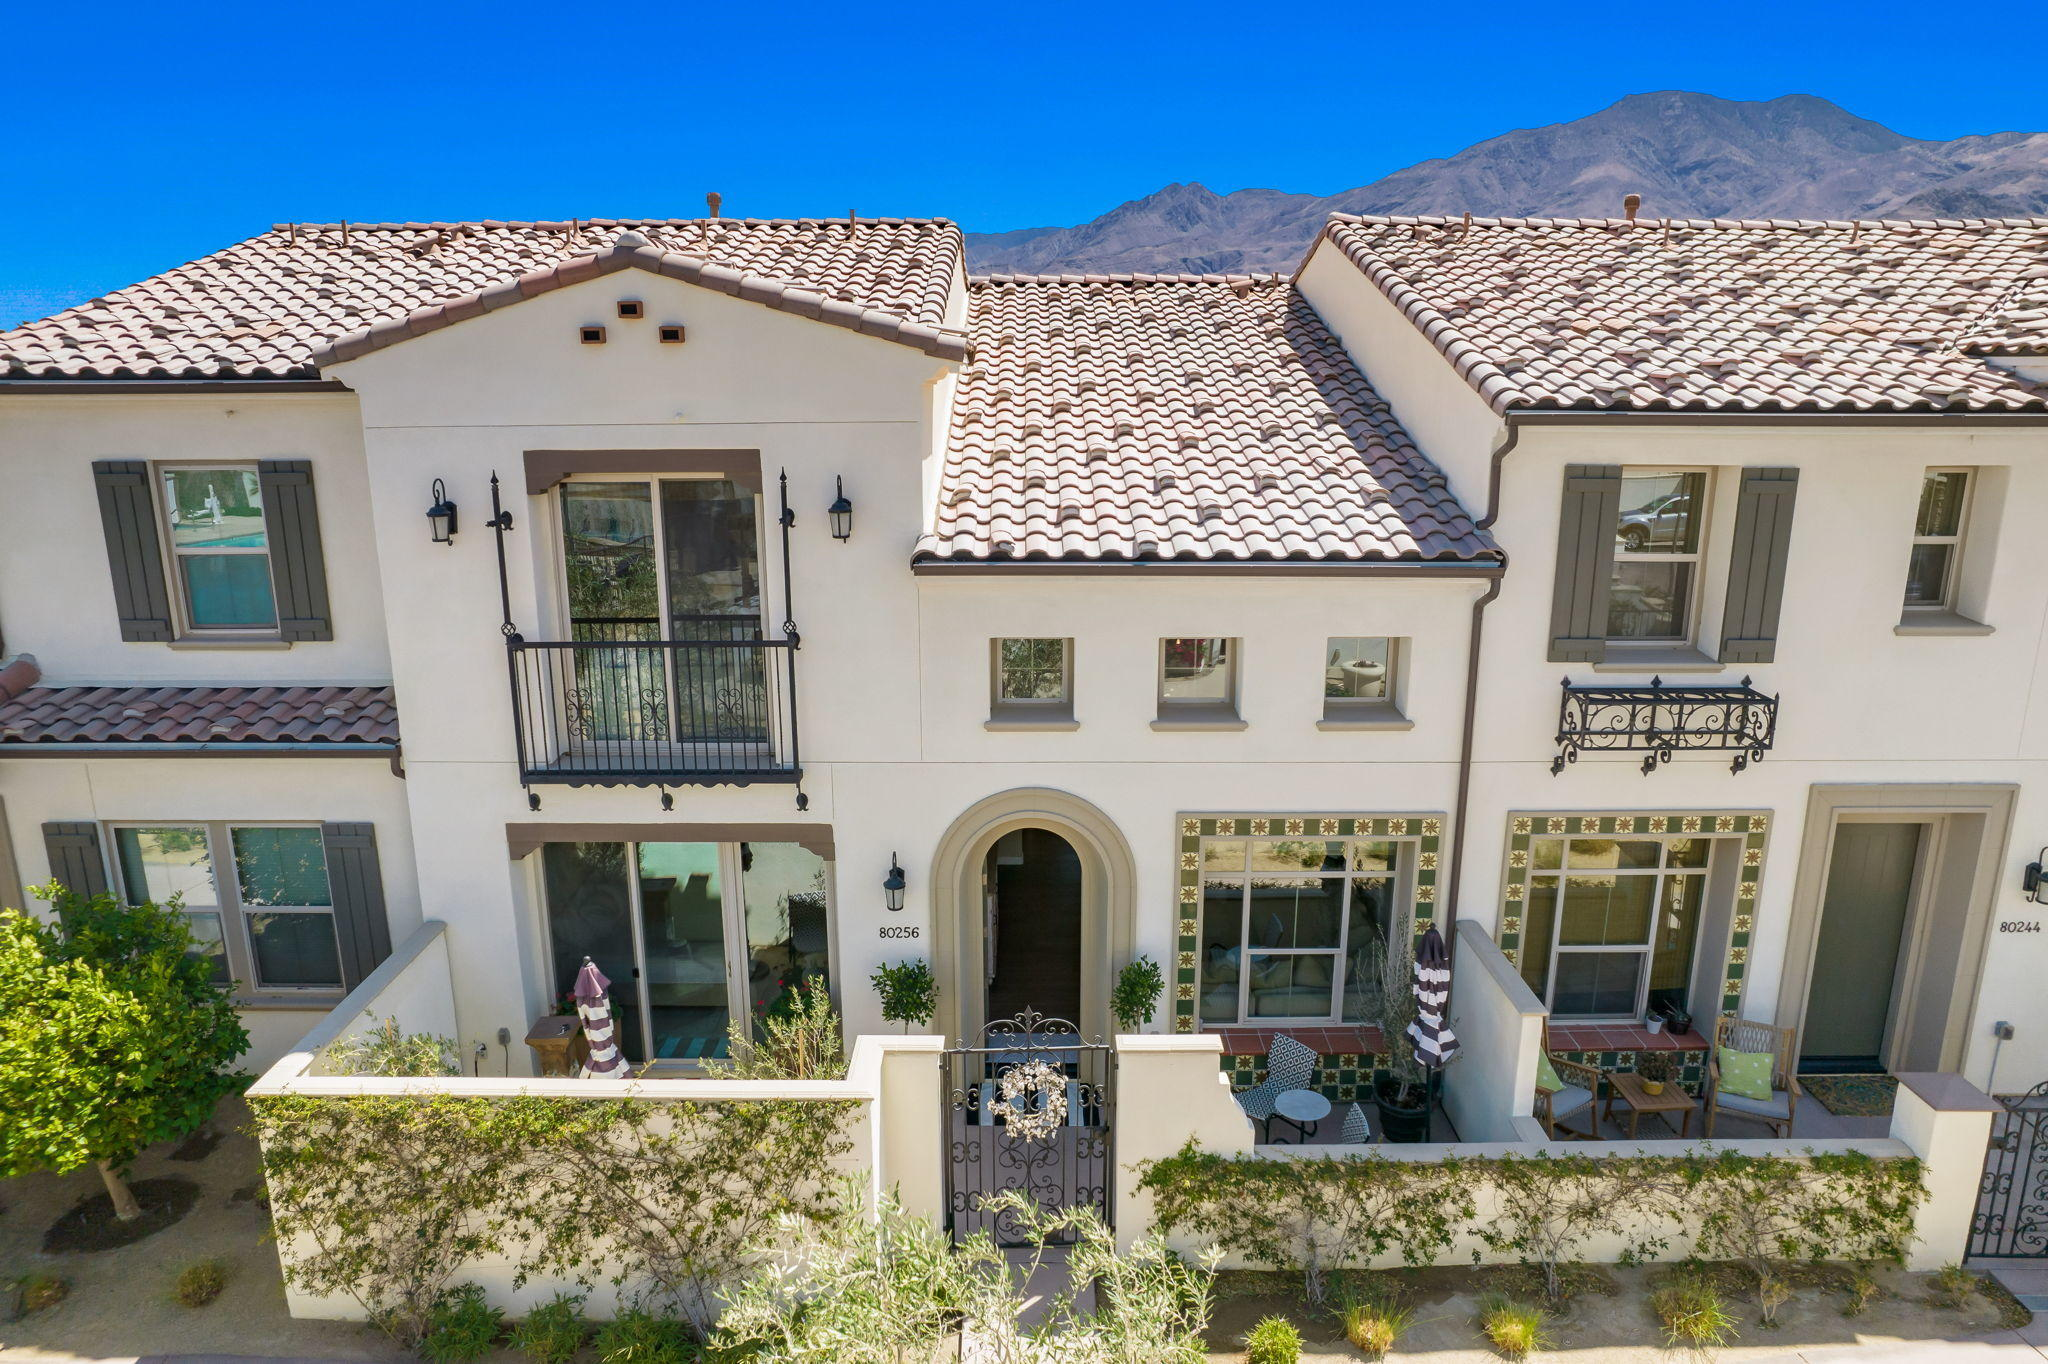 Discover what it means to immerse yourself in true luxury with this immaculate La Quinta residence set within a prestigious community. From the moment you step through the arched door into the light-filled layout, you'll feel this is a special home. A grand open-plan living area stretches before you set under a soaring double-height ceiling with wood floors underfoot and a chandelier overhead. In the kitchen, a center island with a quartz waterfall countertop will appeal to the entertainer while the avid foodie will appreciate the stainless steel appliances that include a dishwasher and gas range. Ensuring utter opulence are the breathtaking lighting fixtures, the plush bedrooms, incredible bathrooms and as a bonus, you'll have a built-in speaker system to always have the right mood.  Your breathtaking abode is set within the enviable Signature PGA West, a new luxurious gated community. As a lucky resident, you'll live within walking distance of the world-class community amenities that include a fitness room, a resort-inspired pool, and a clubhouse with golf and tennis. Isn't it time you treat yourself to this life of total leisure?